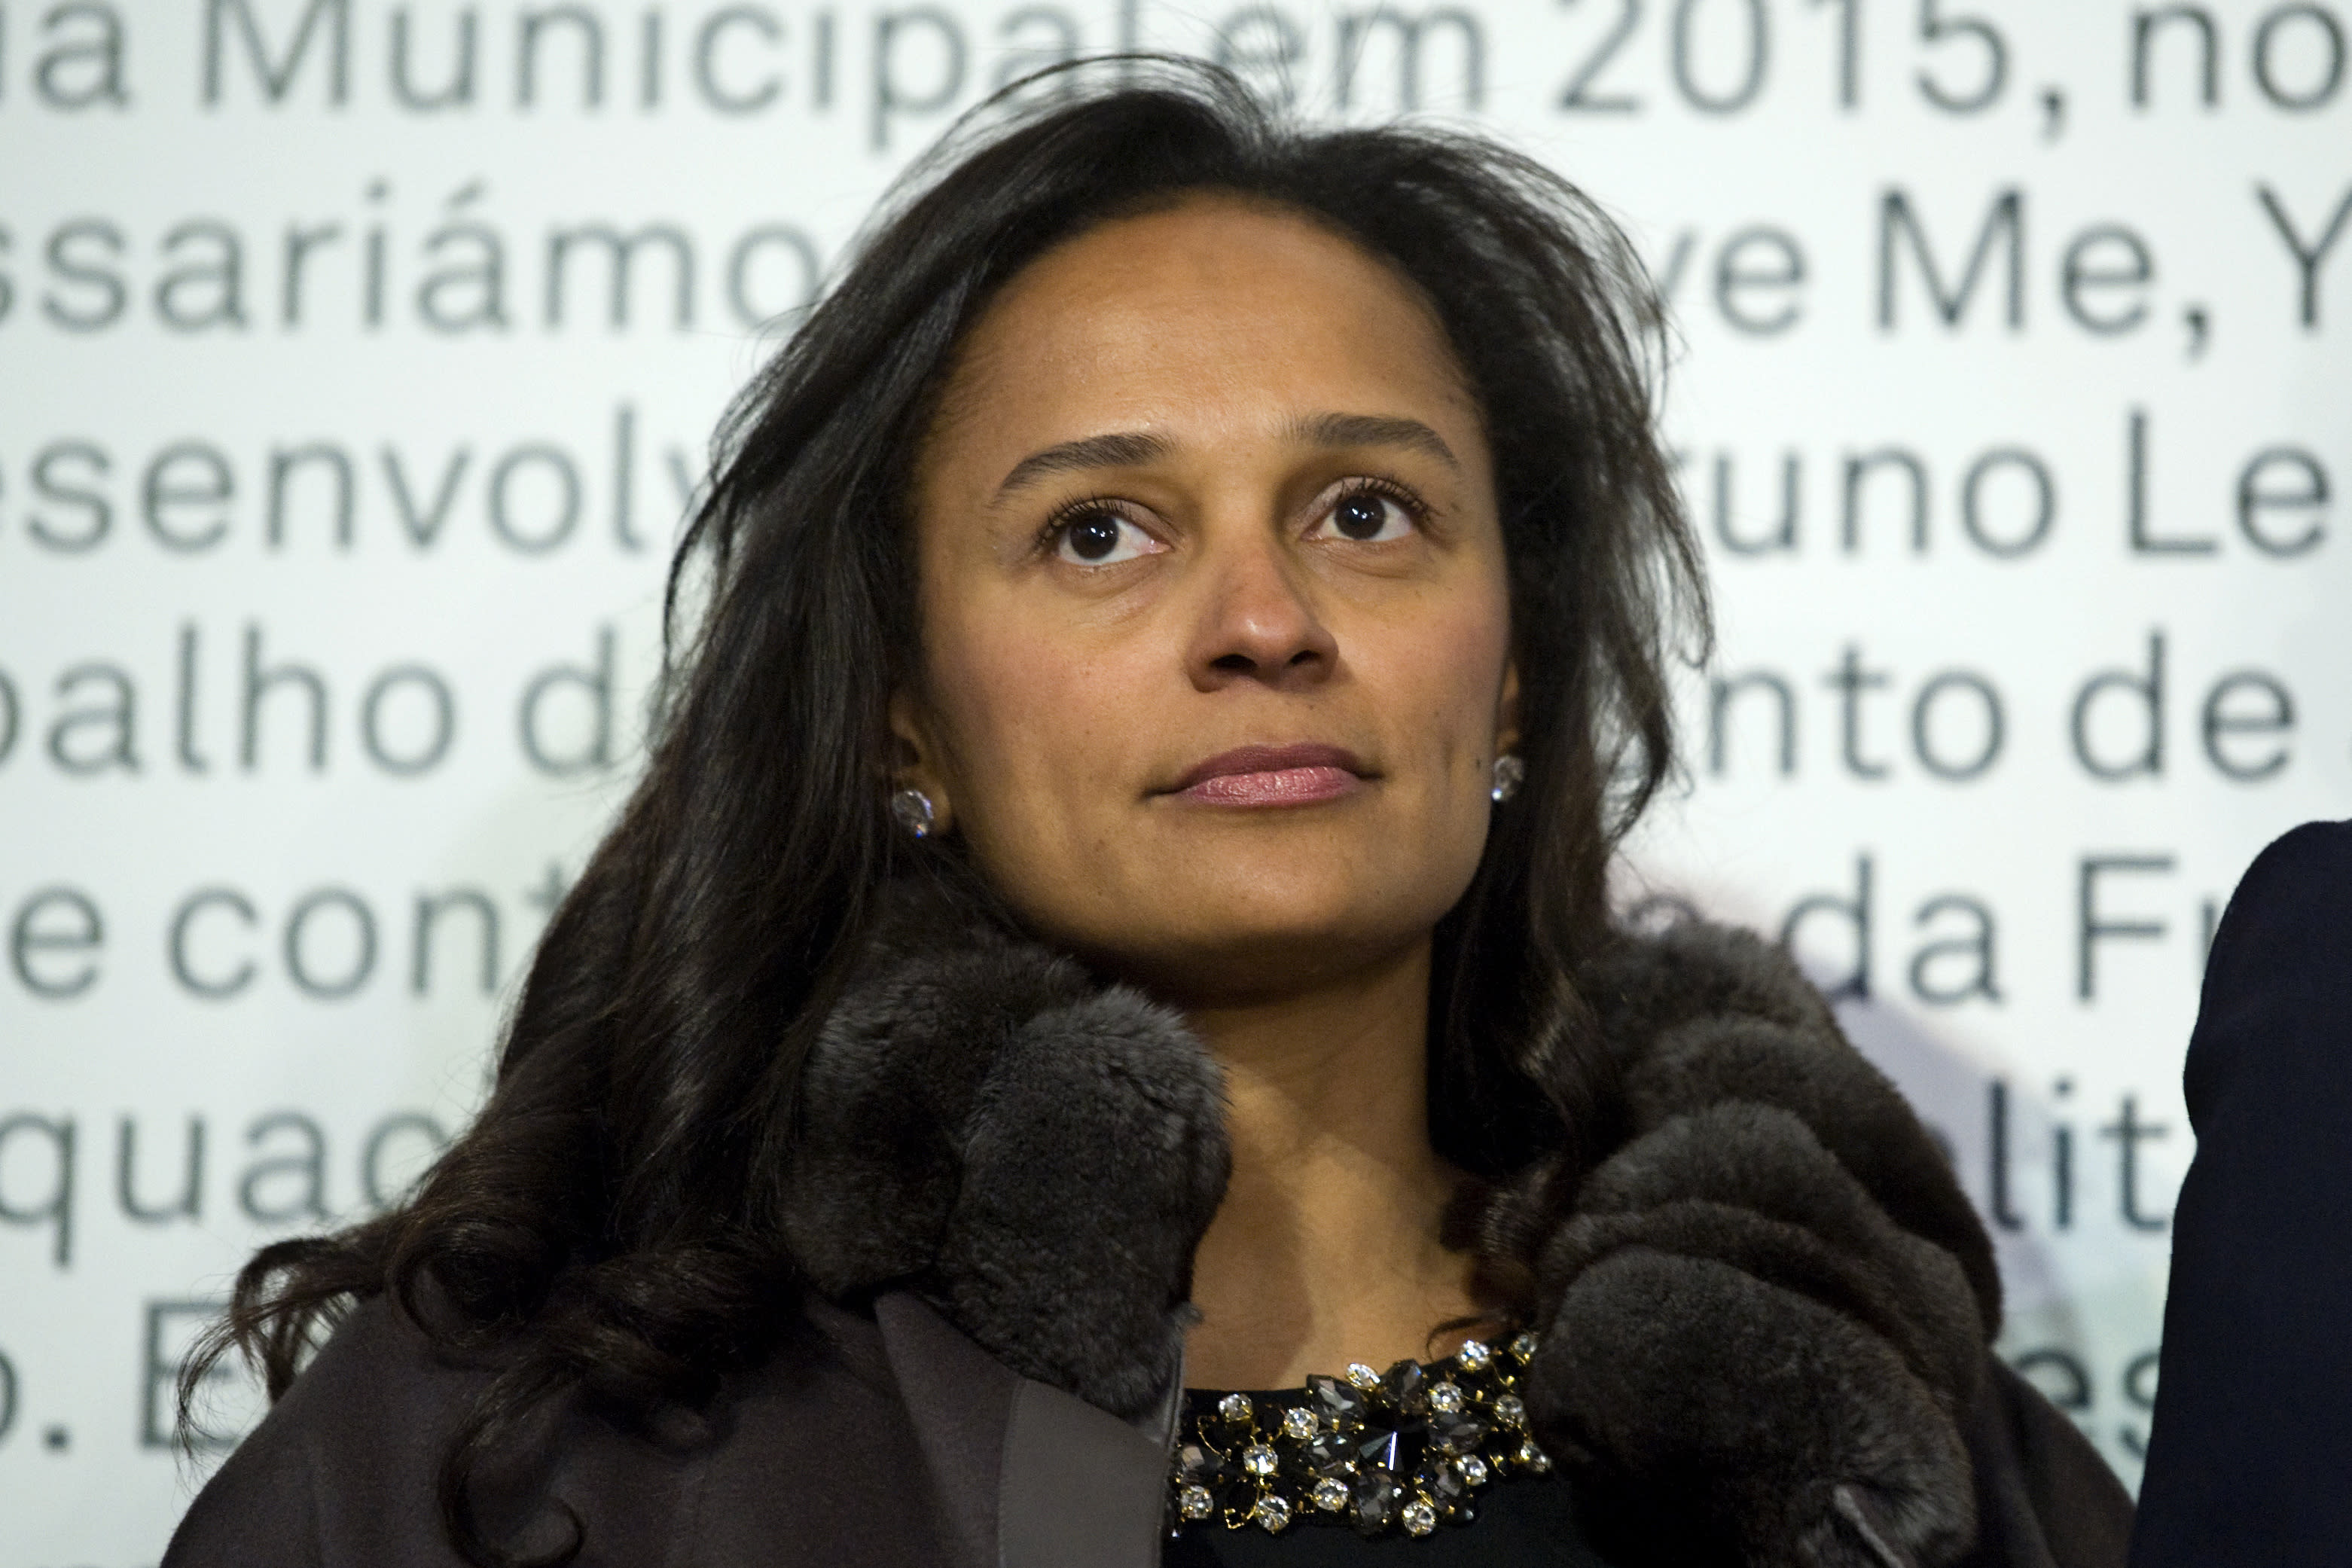 The wealthiest woman in Africa - and Russian Federation